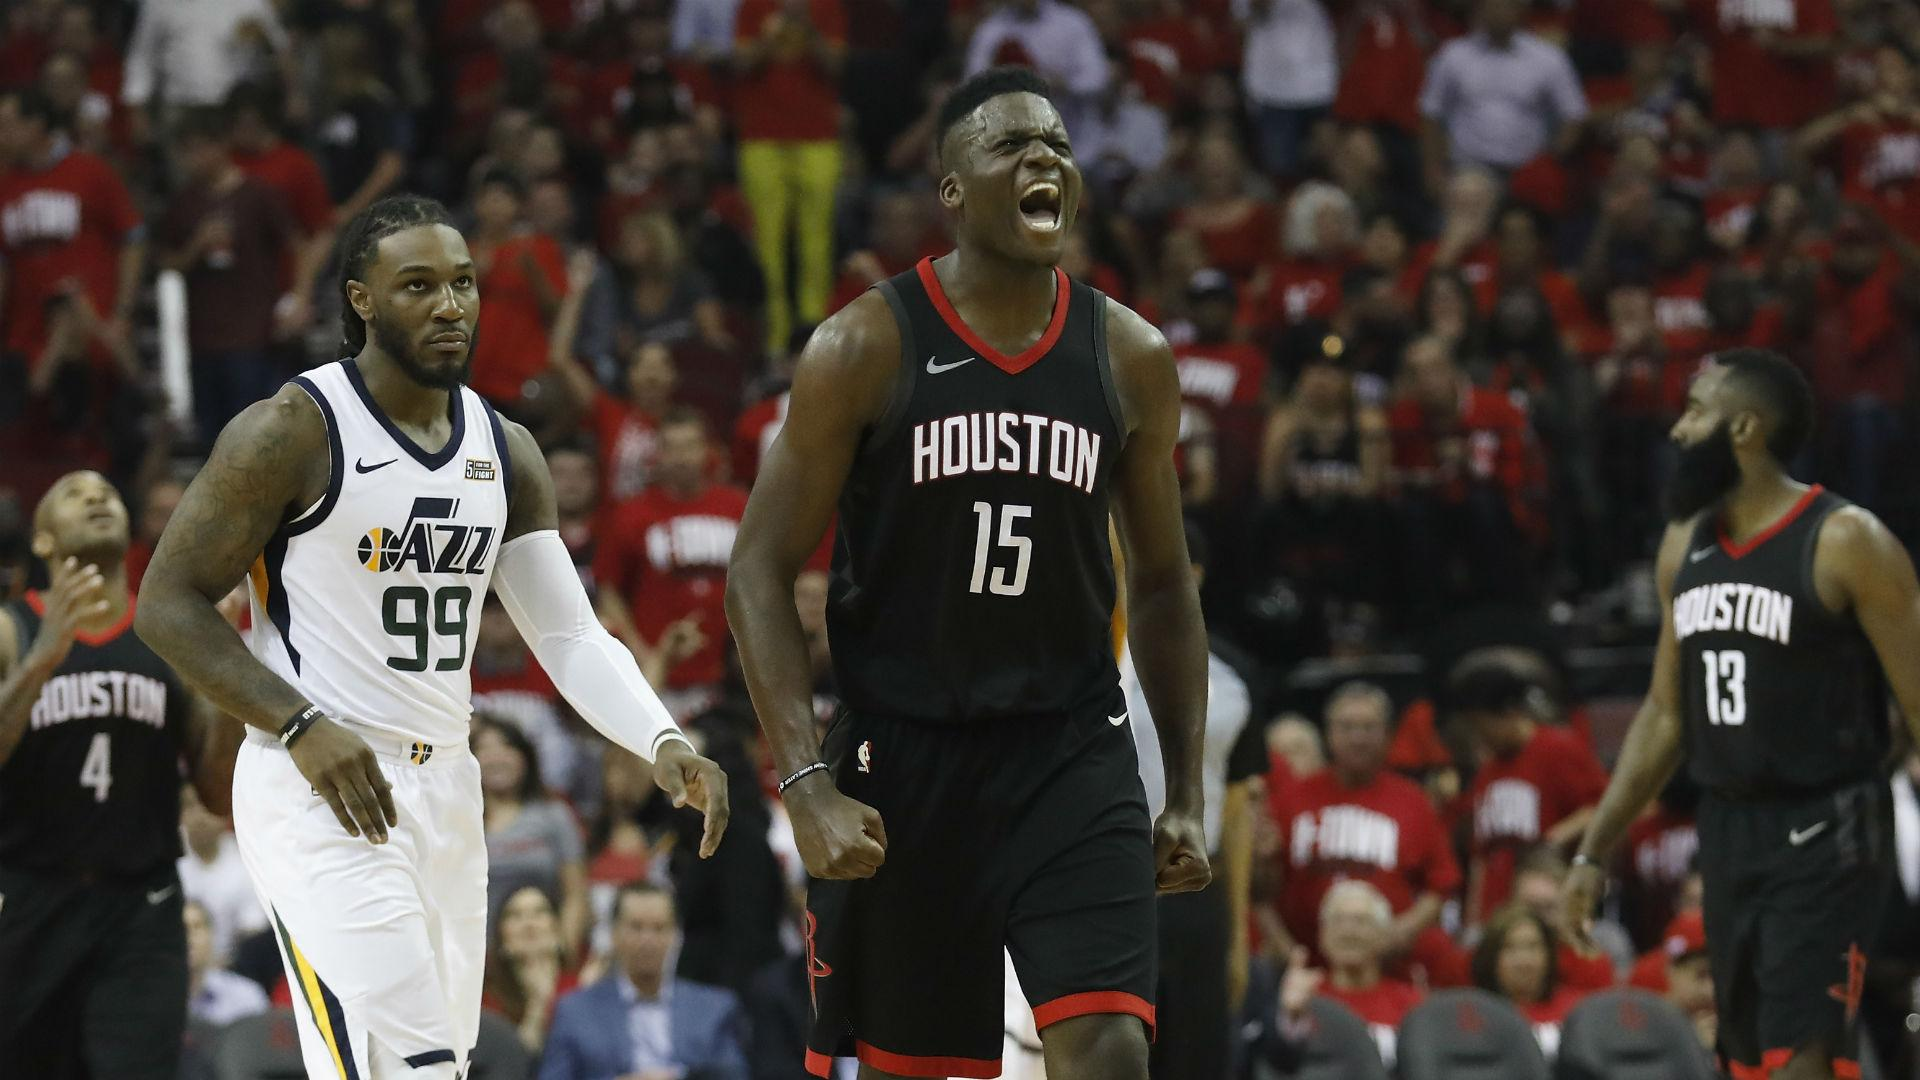 Clint Capela's defense gives Rockets a chance at the impossible ...